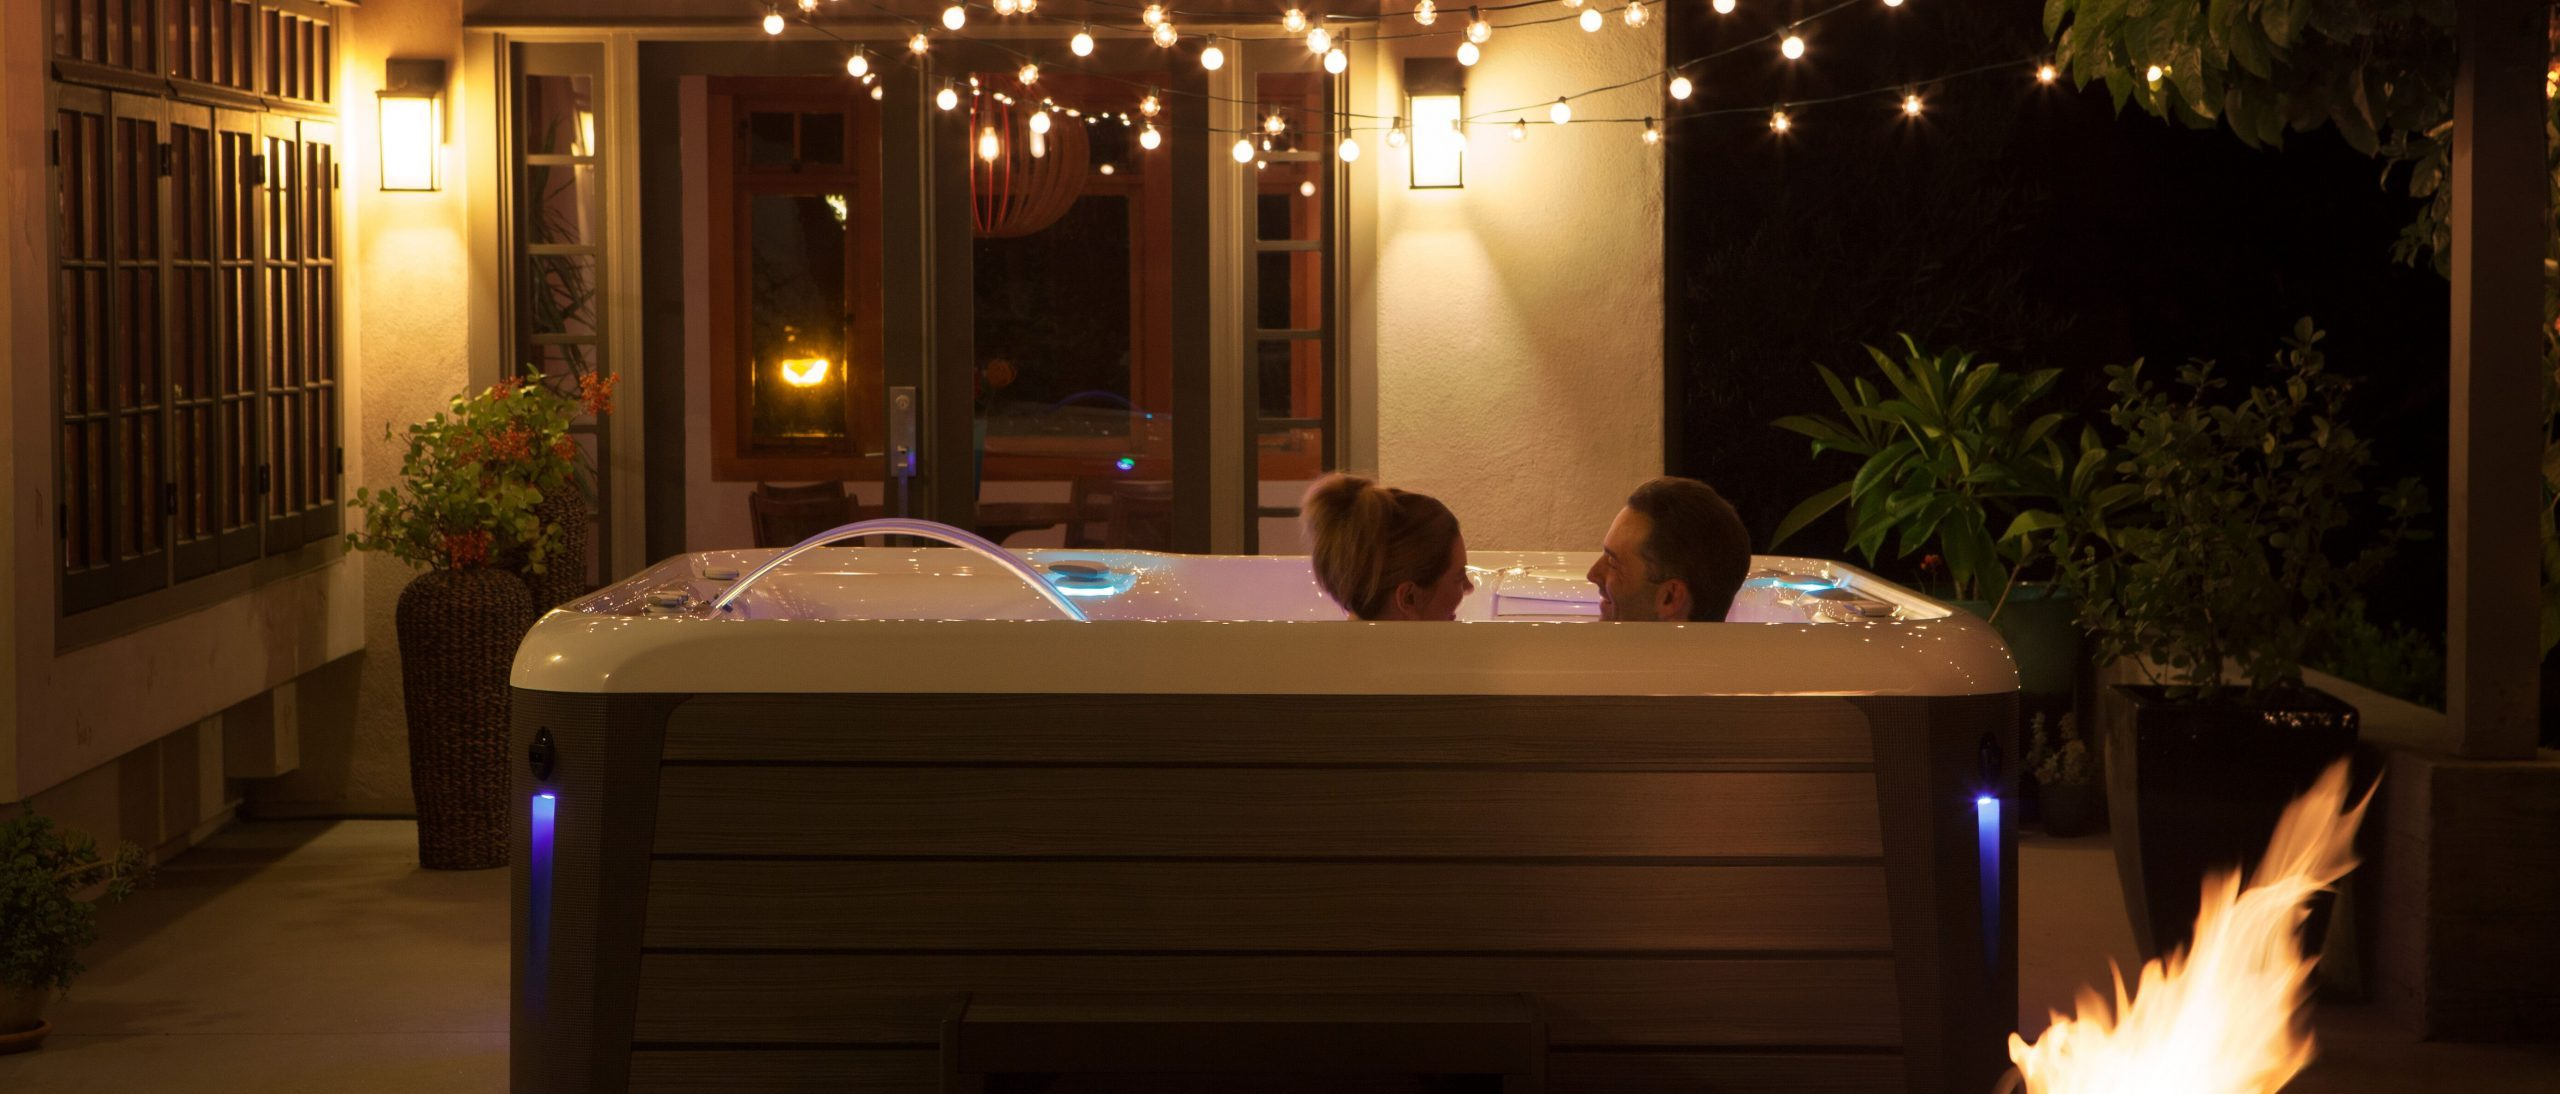 How to Plan a Hot Tub Date Night They'll NEVER Forget!